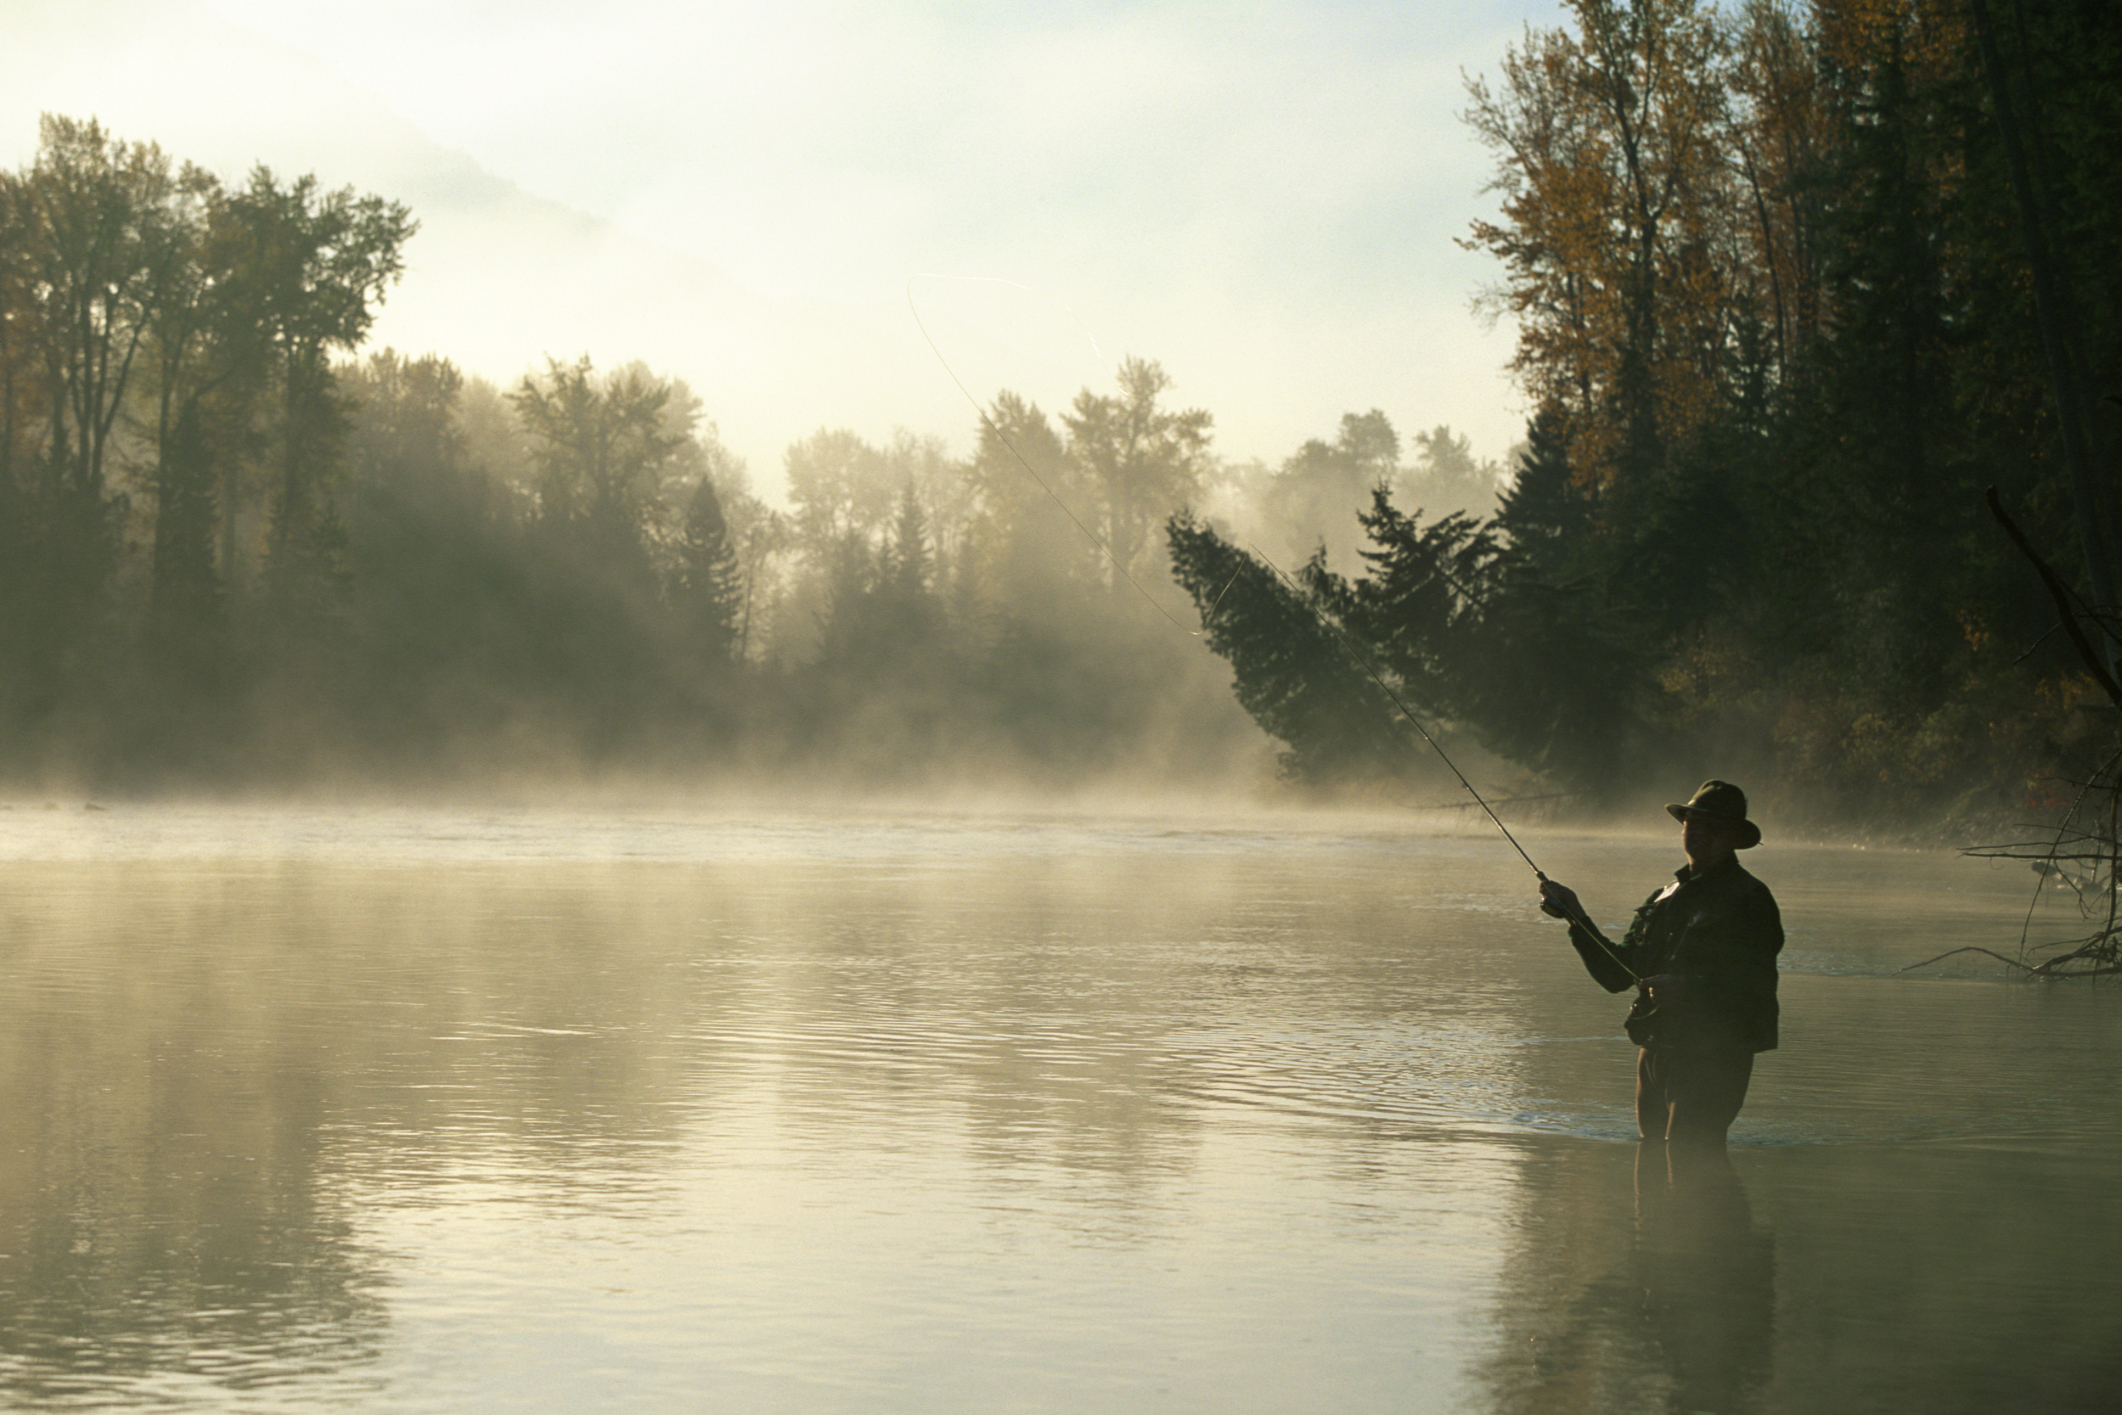 Ontario Fishing Licenses Gone Outdoors Your Adventure